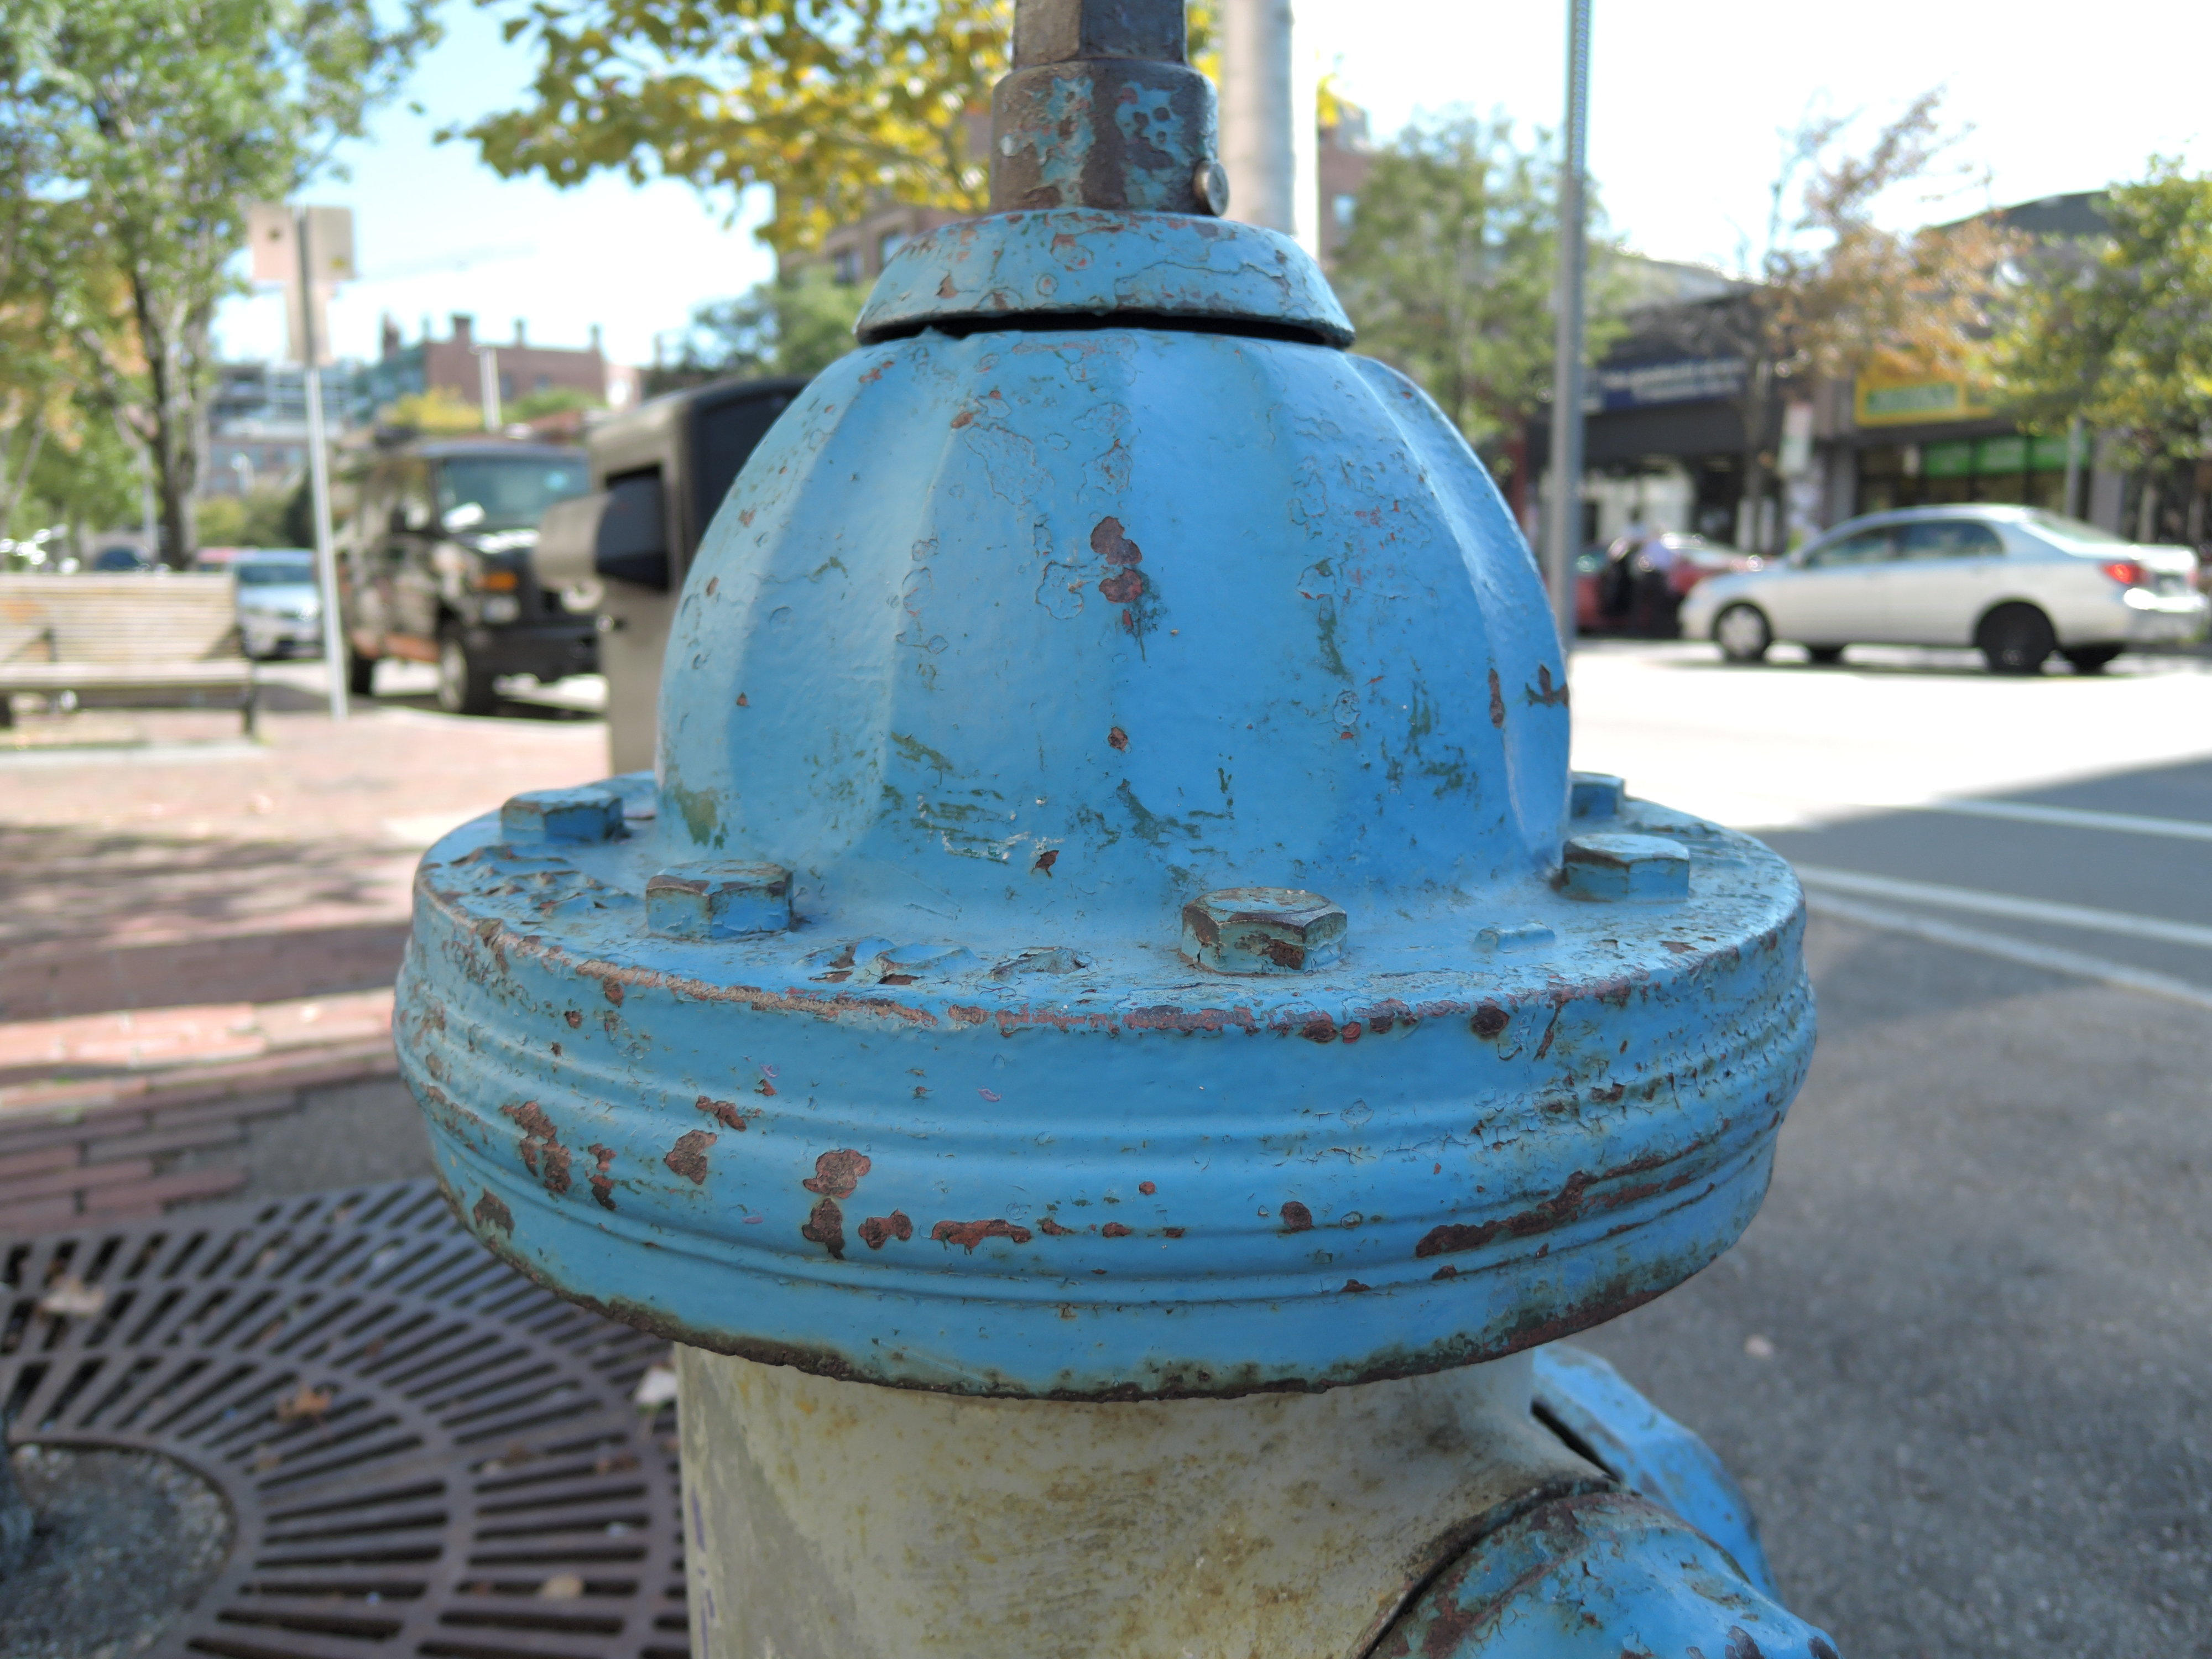 A sample photo of a fire hydrant taken by the Nikon Coolpix P340.